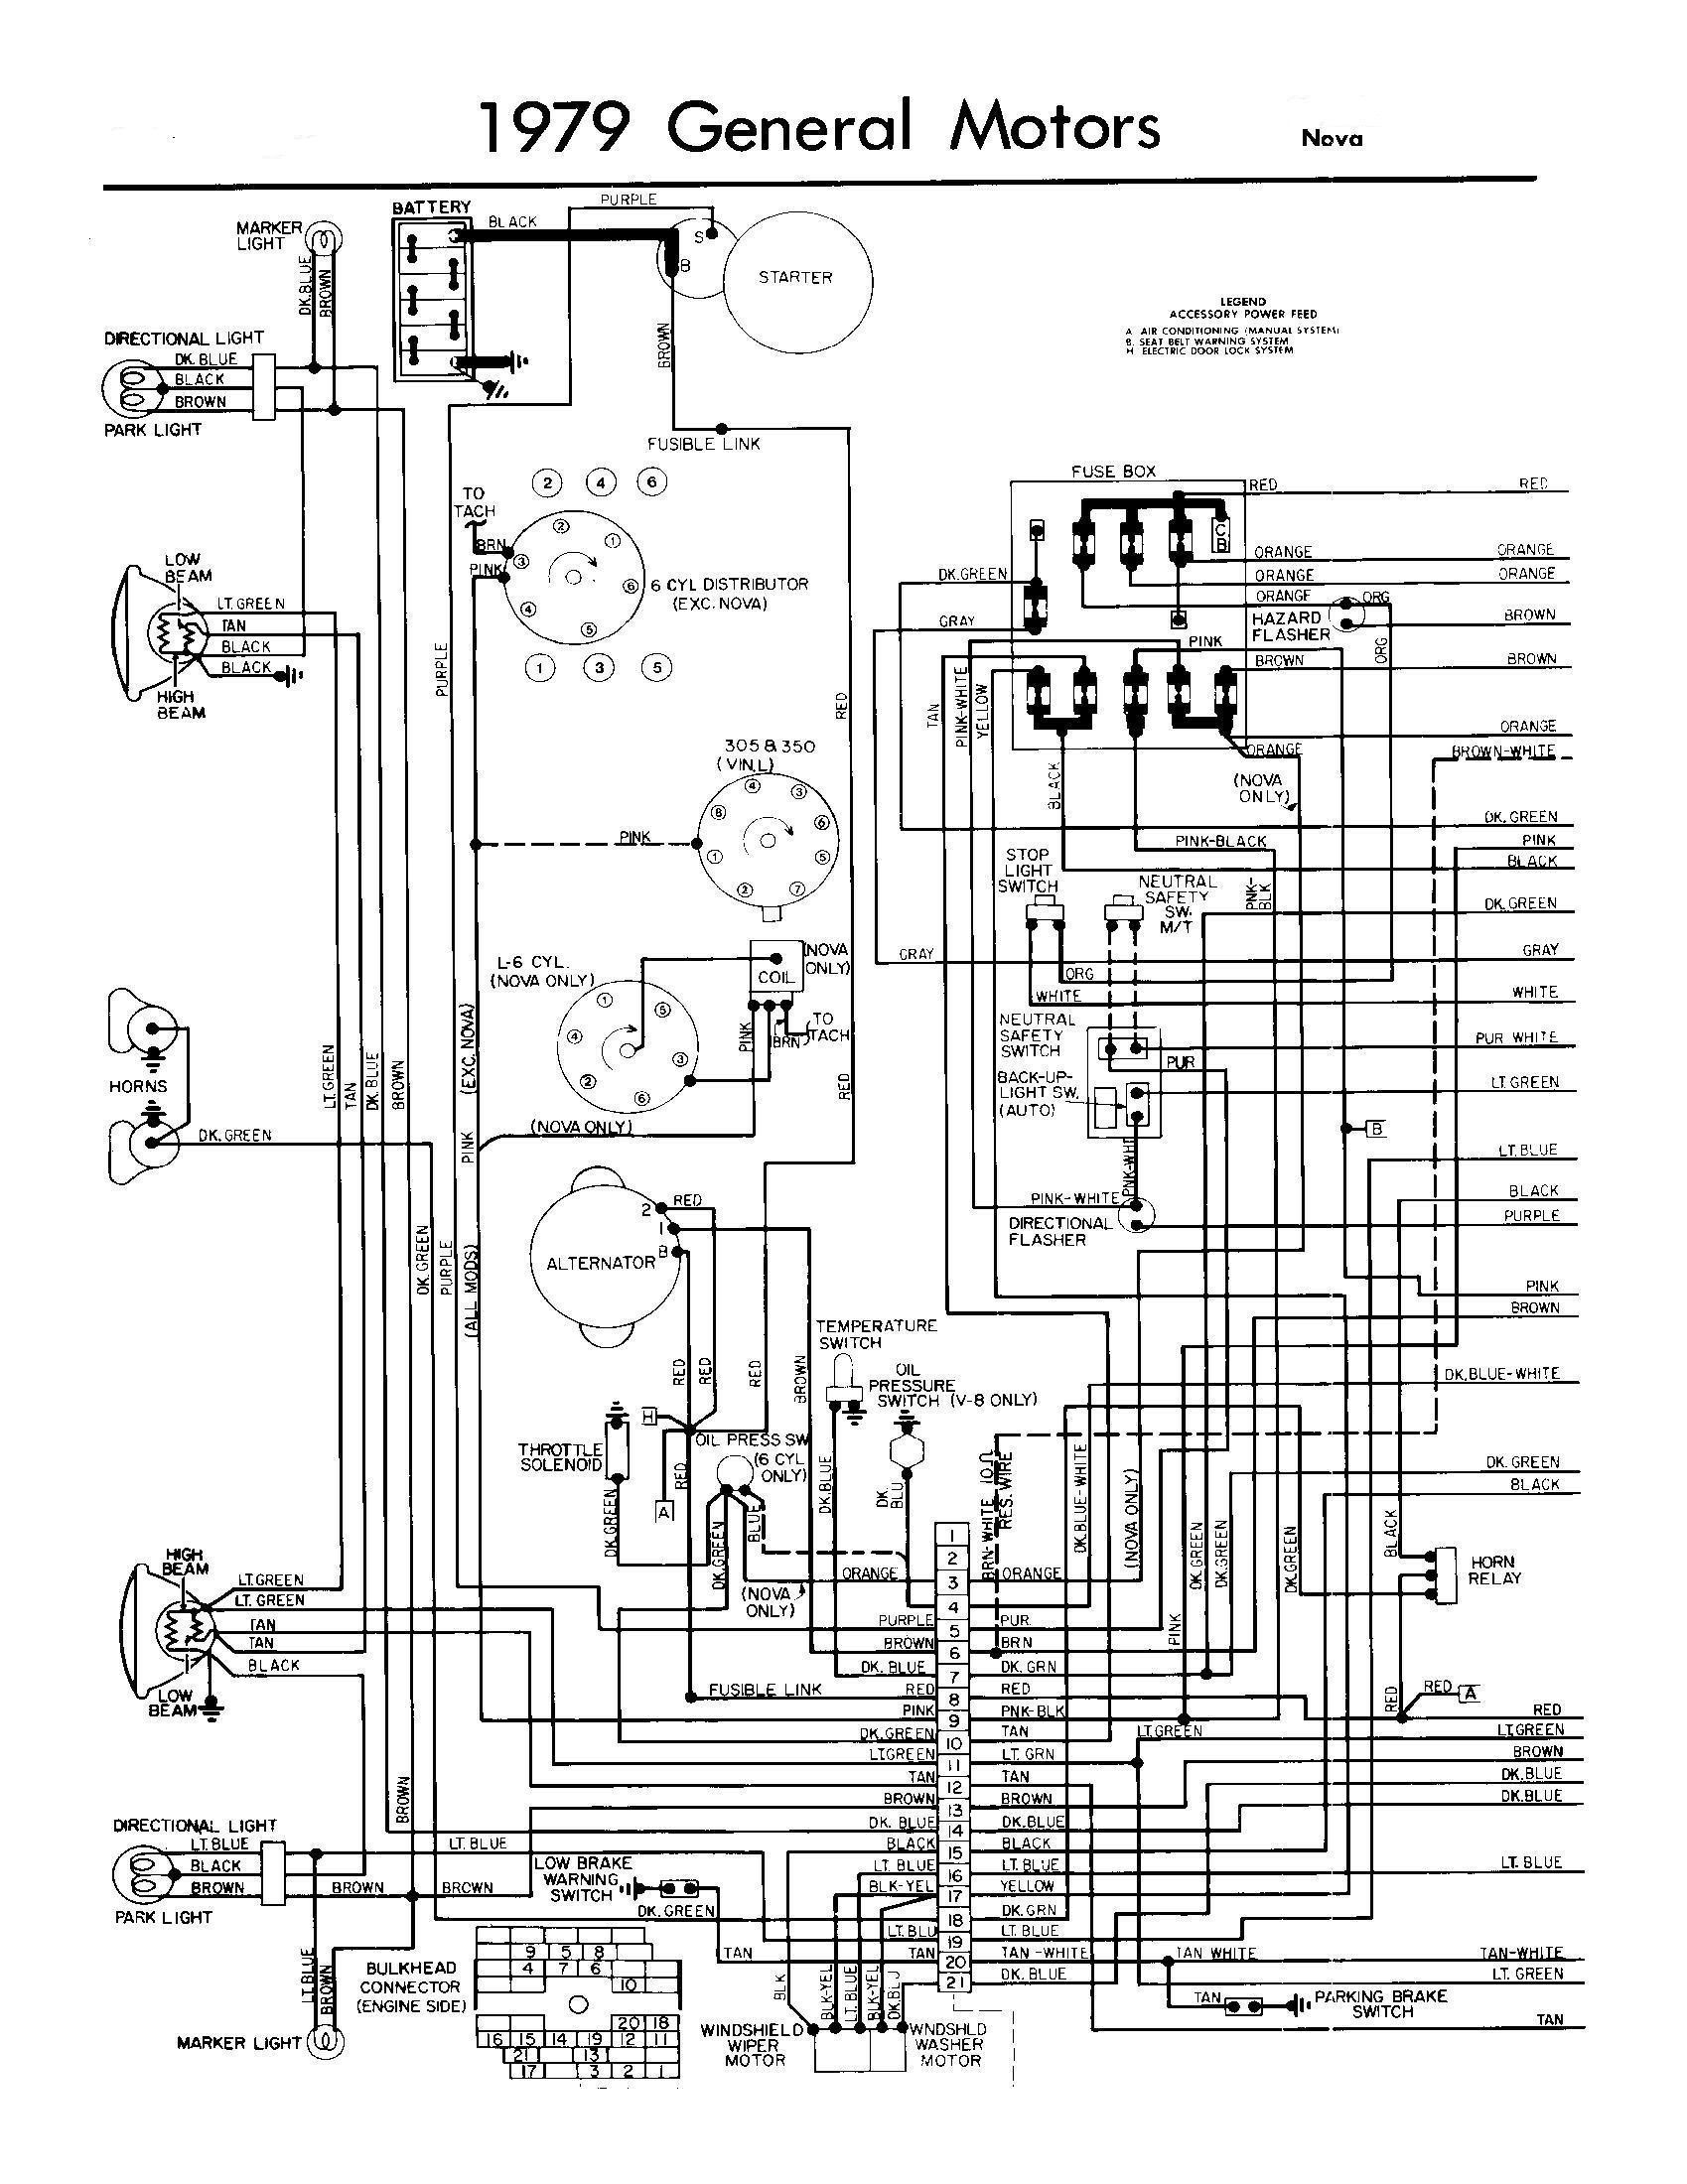 Caterpillar Marine Engine Wiring Diagram Alternator Wiring Diagram Chevy S Best Engine Starter Diagram Chevy Truck Wiring Diagram Circuit Of Alternator Wiring Diagram Chevy on Volvo C70 Fuse Location